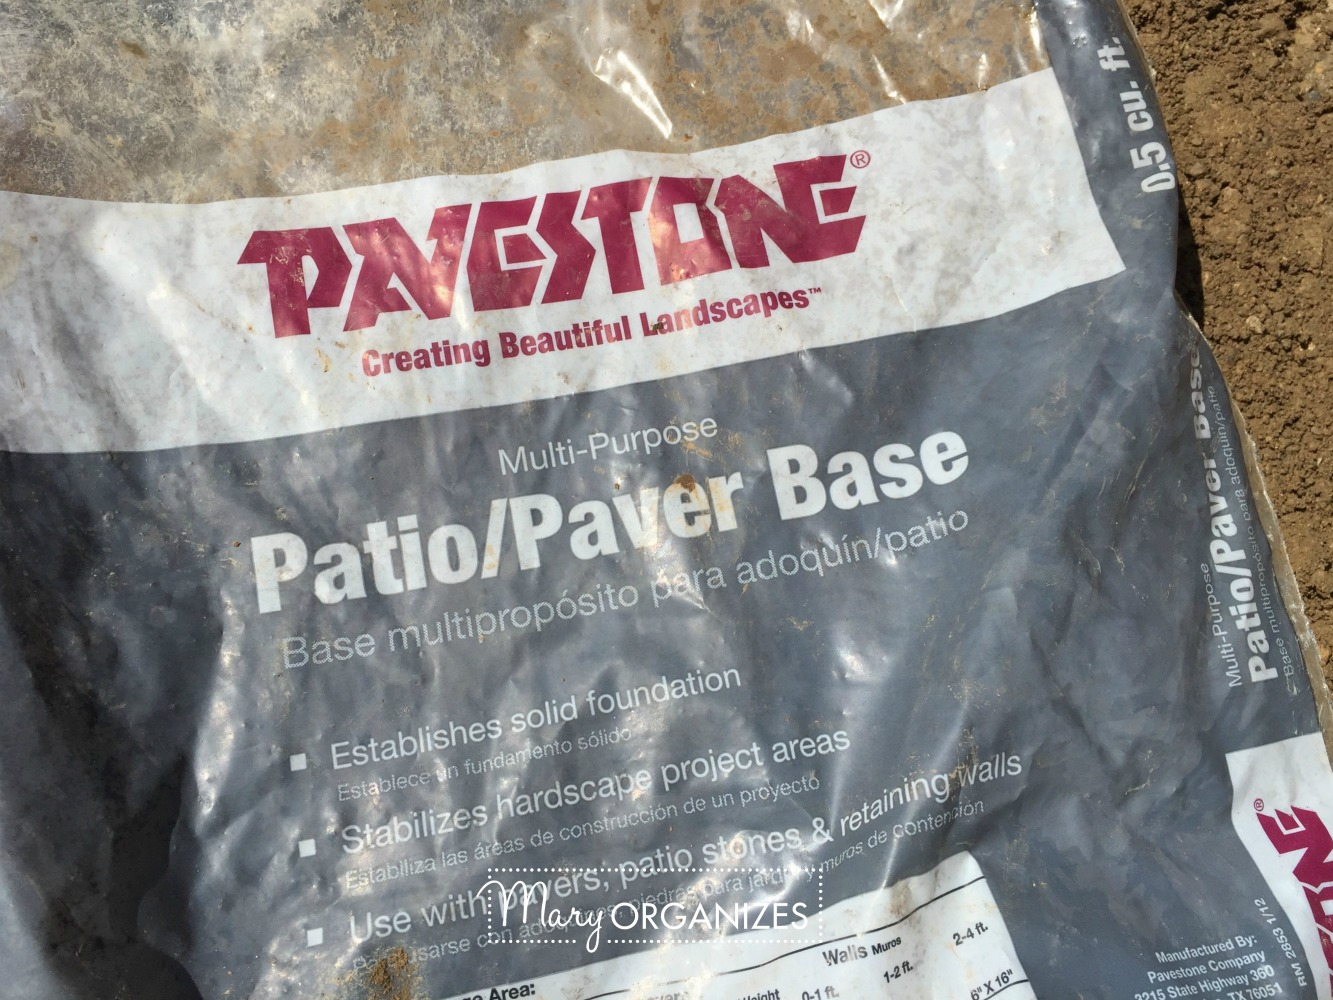 How To Install Paver Patio - My Raised Garden Foundation 4